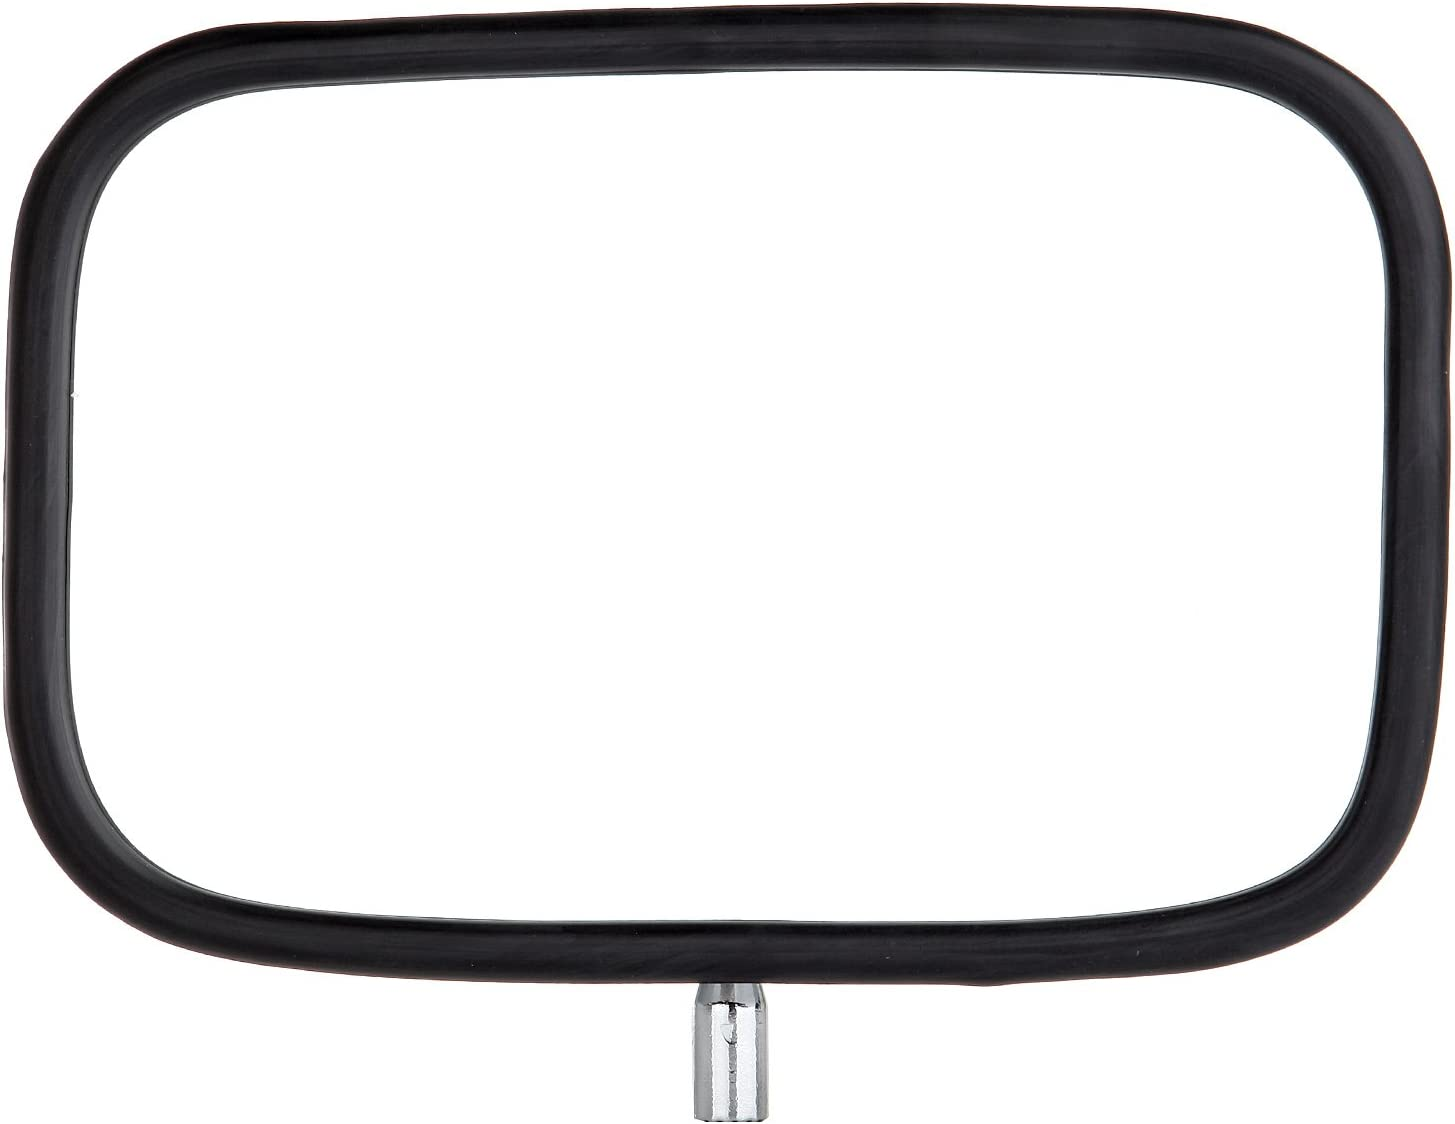 SCITOO Side View Mirrors Passenger Side and Driver Side Mirror Fit Compatible with 1980-1996 Ford Bronco II 1991-1994 Ford Explorer 1980-1984 Ford F100 F150 F250 Ford F250 F350 Truck Manual Folding